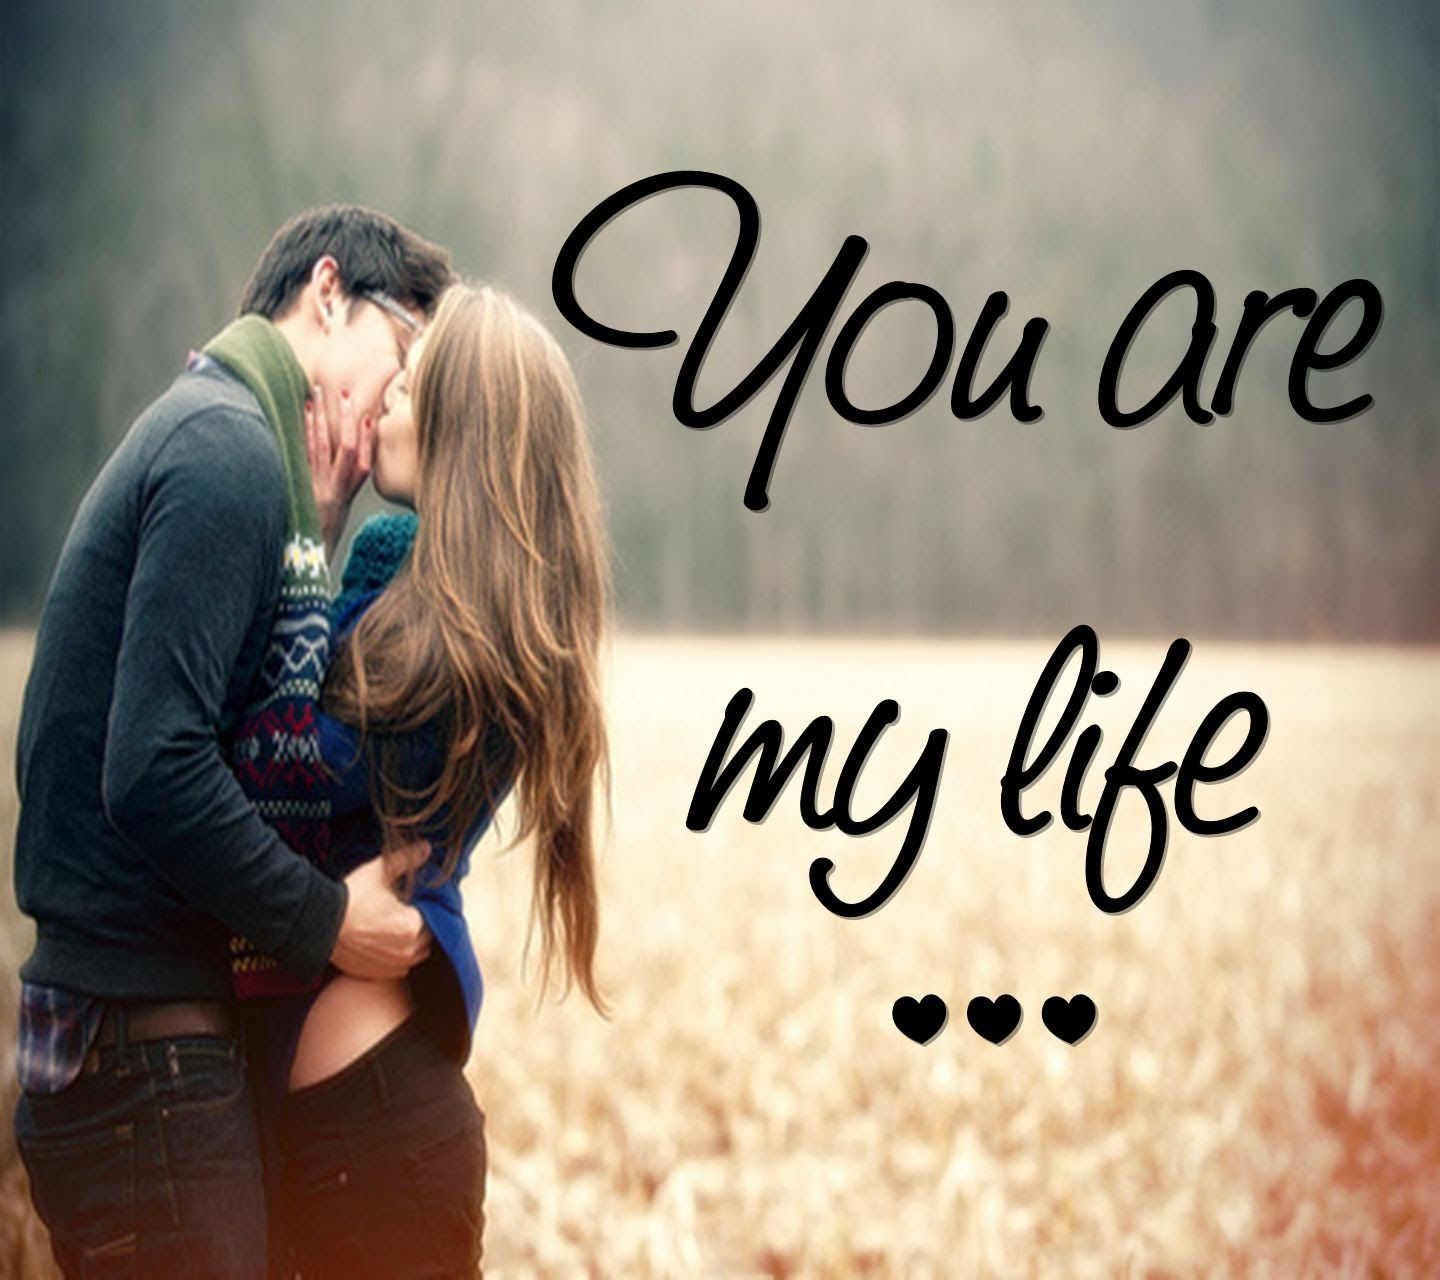 I Love You Messages for Wife Quotes for Her